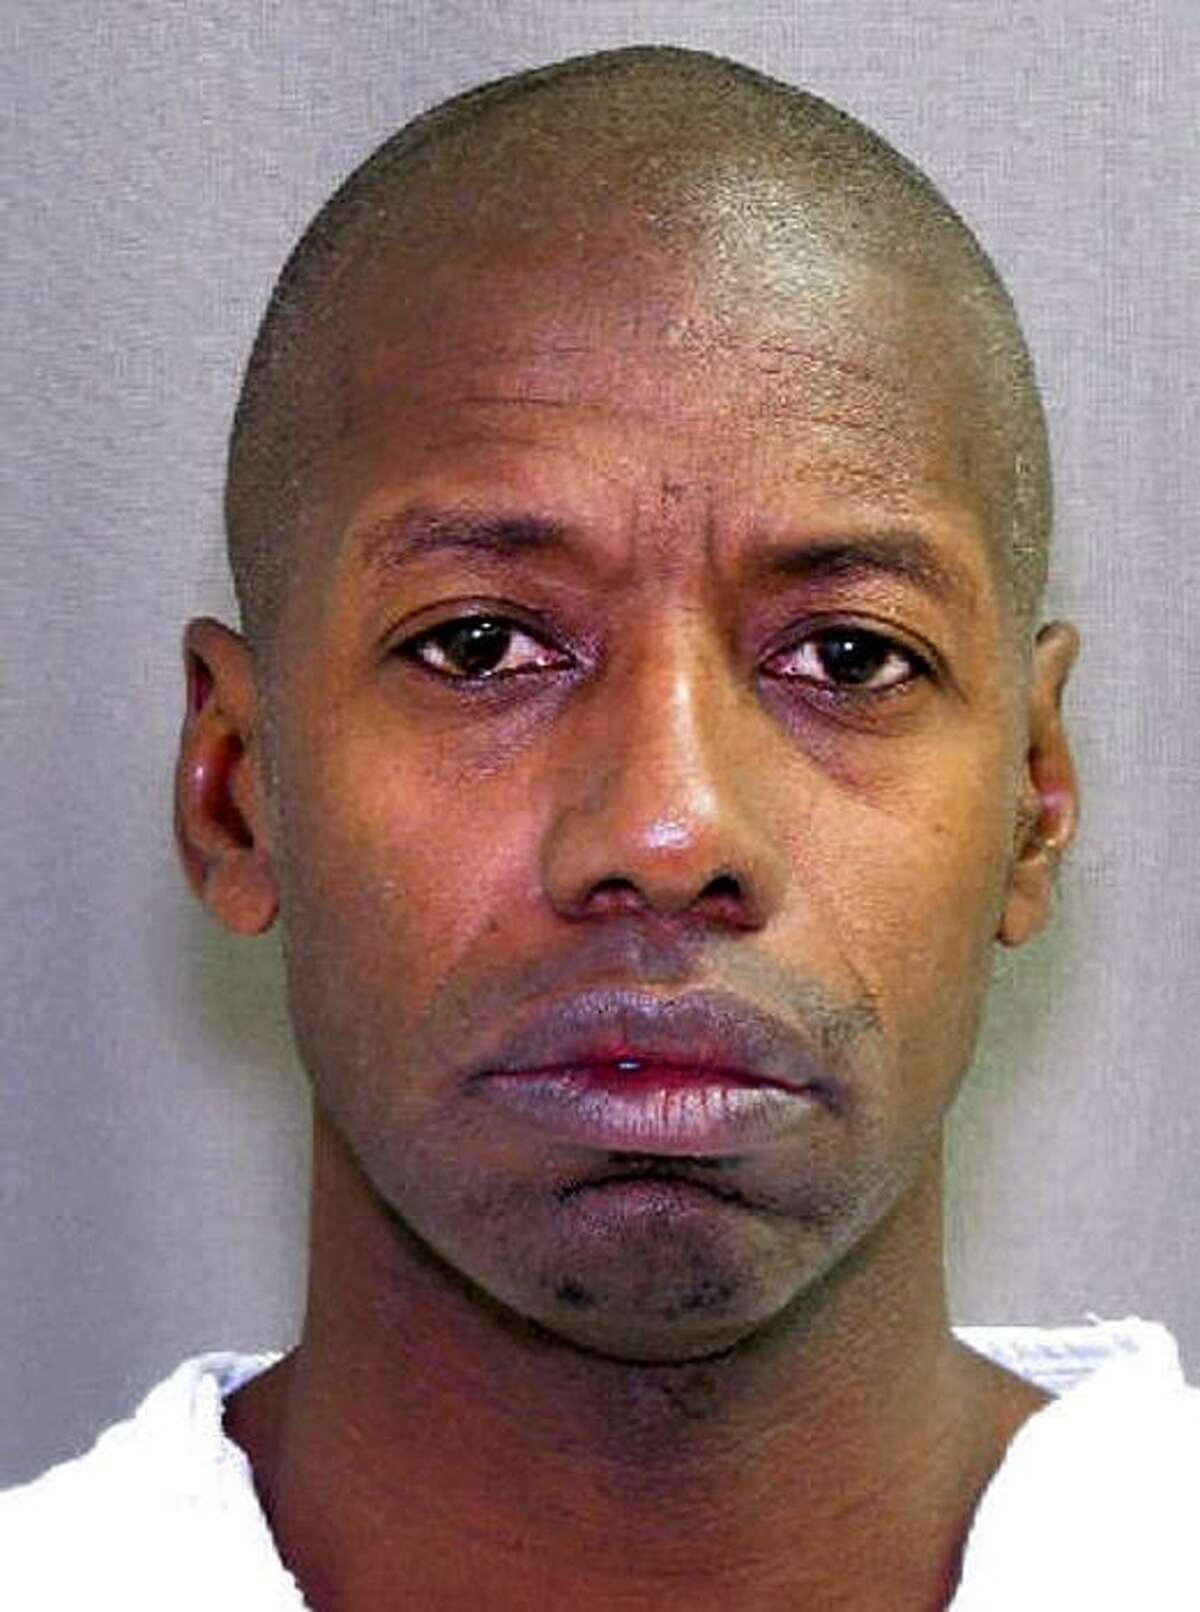 This undated handout photo provided by the Texas Department of Criminal Justice shows Darren Vann.